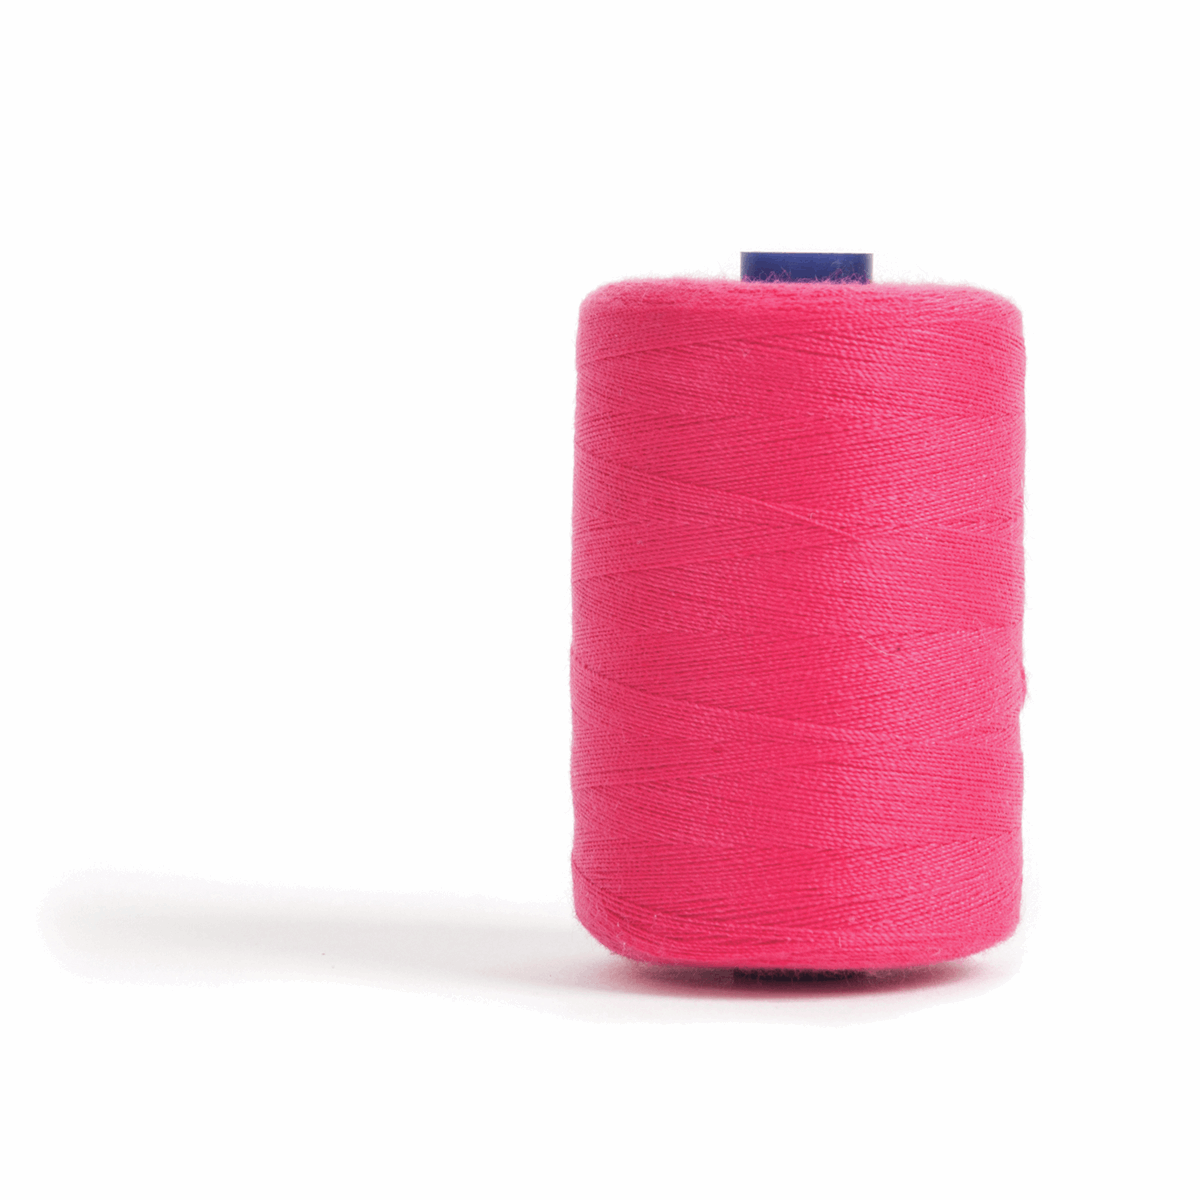 Thread 1000m Extra Large - Hot Pink - for Sewing and Overlocking